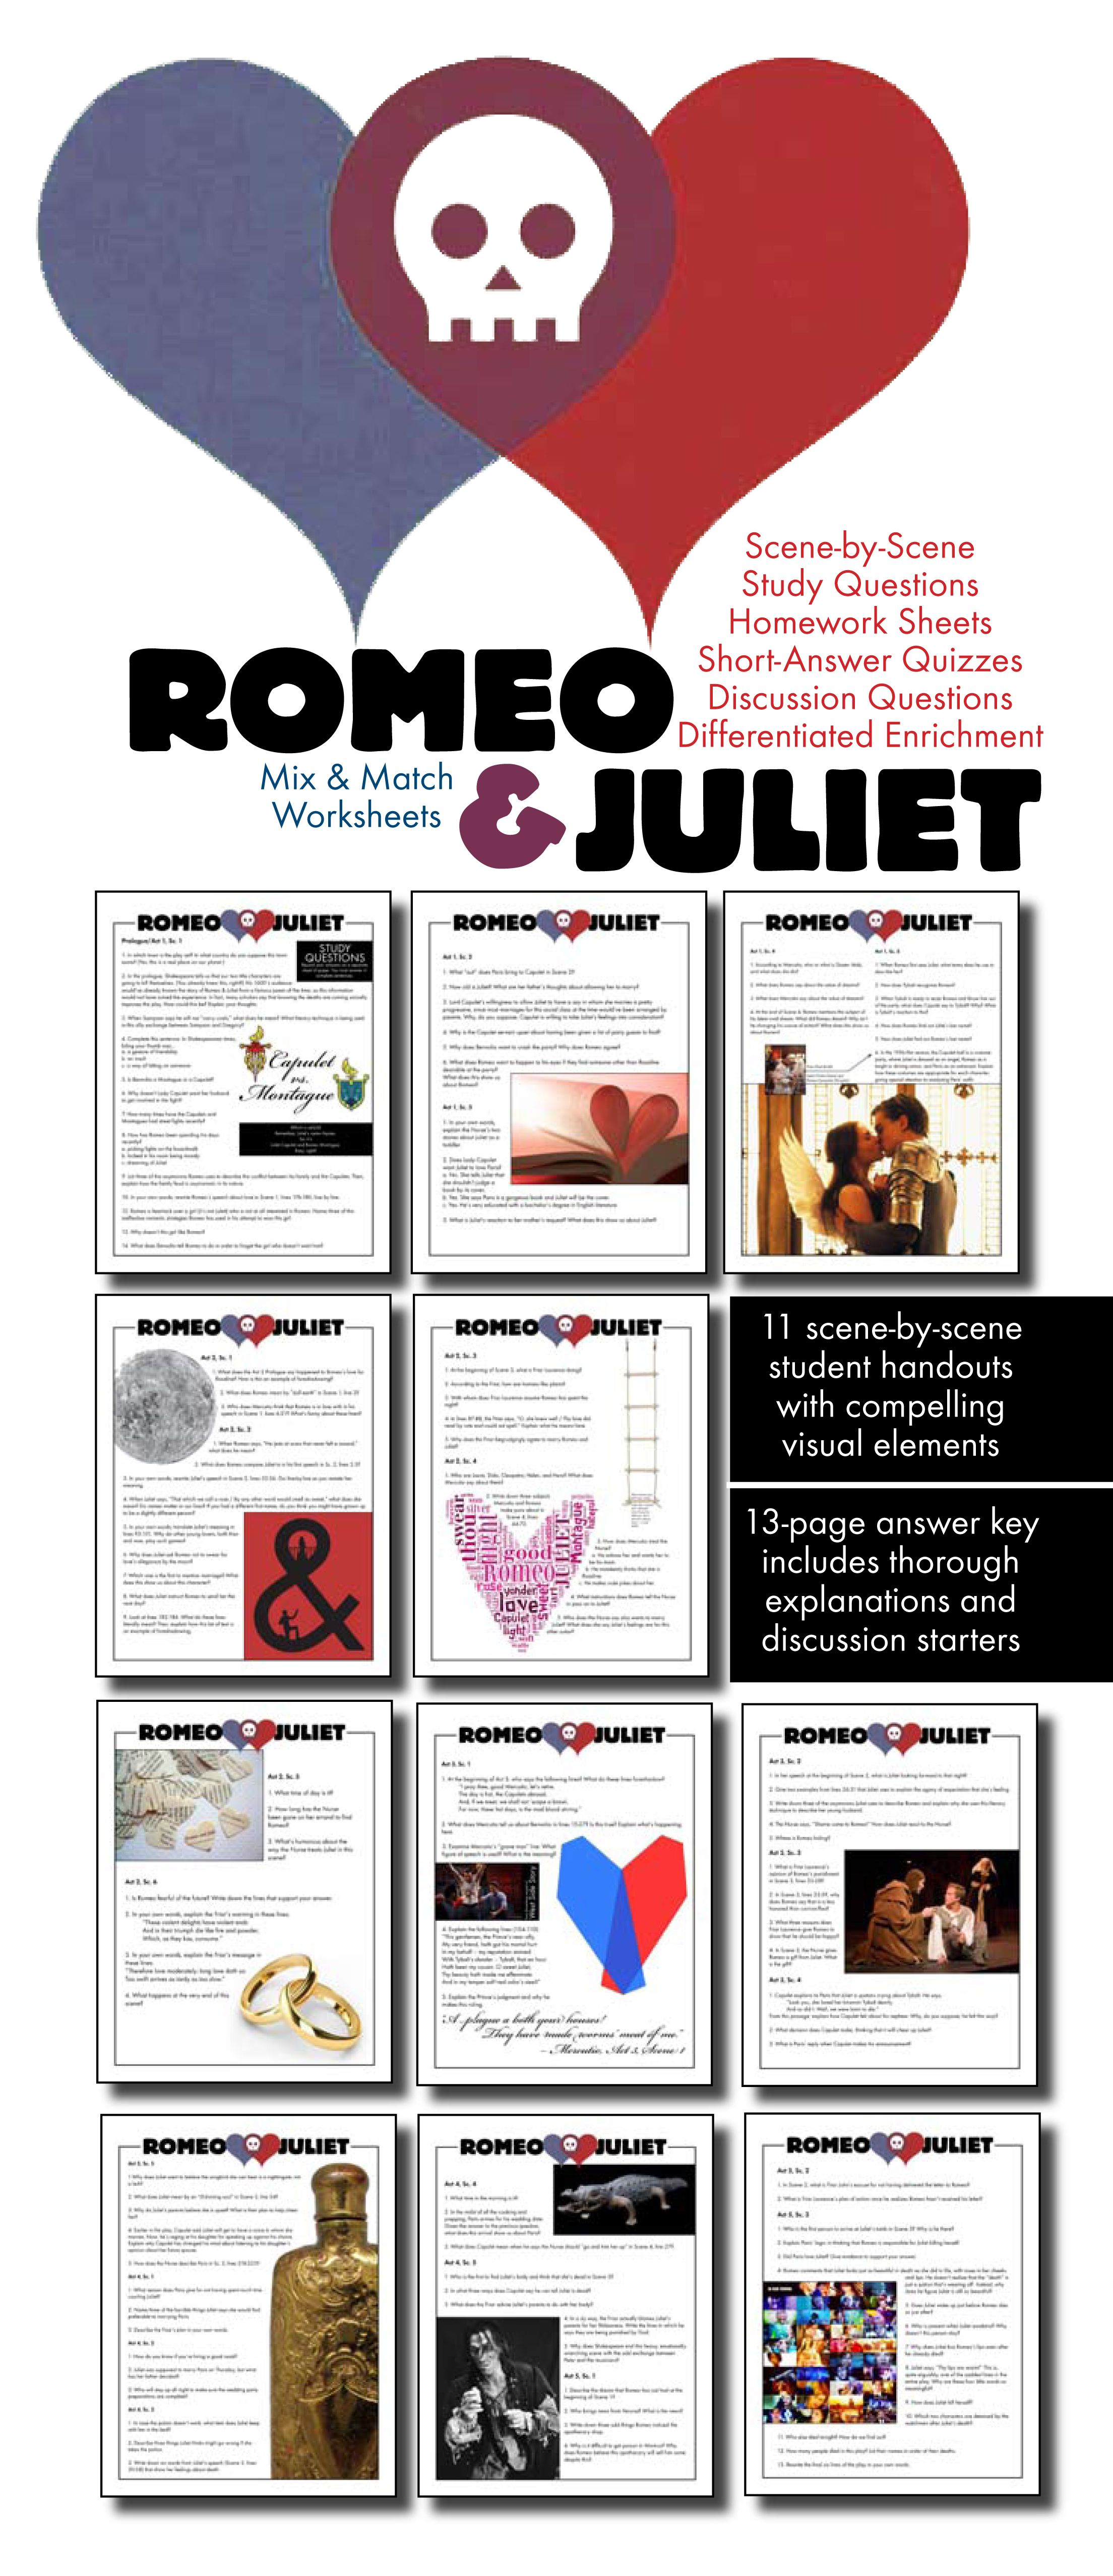 Romeo Juliet Worksheets Quizzes Homework Discussion For